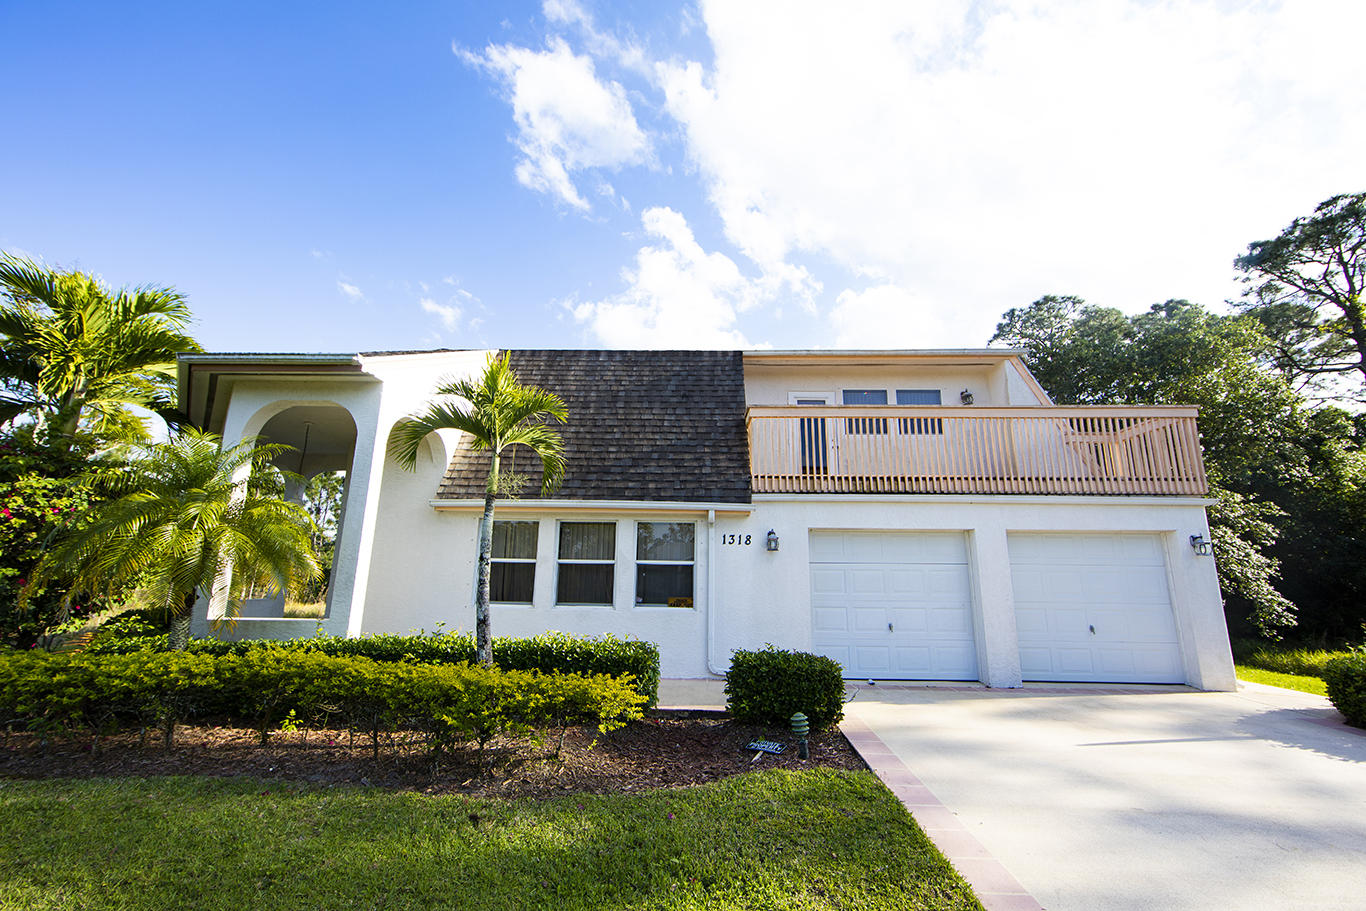 Large 5 bedroom, 3 bathroom home in rapidly growing area of Port Saint Lucie!! No HOA, large lot Pool/spa home!! Jump on this one... Great price!